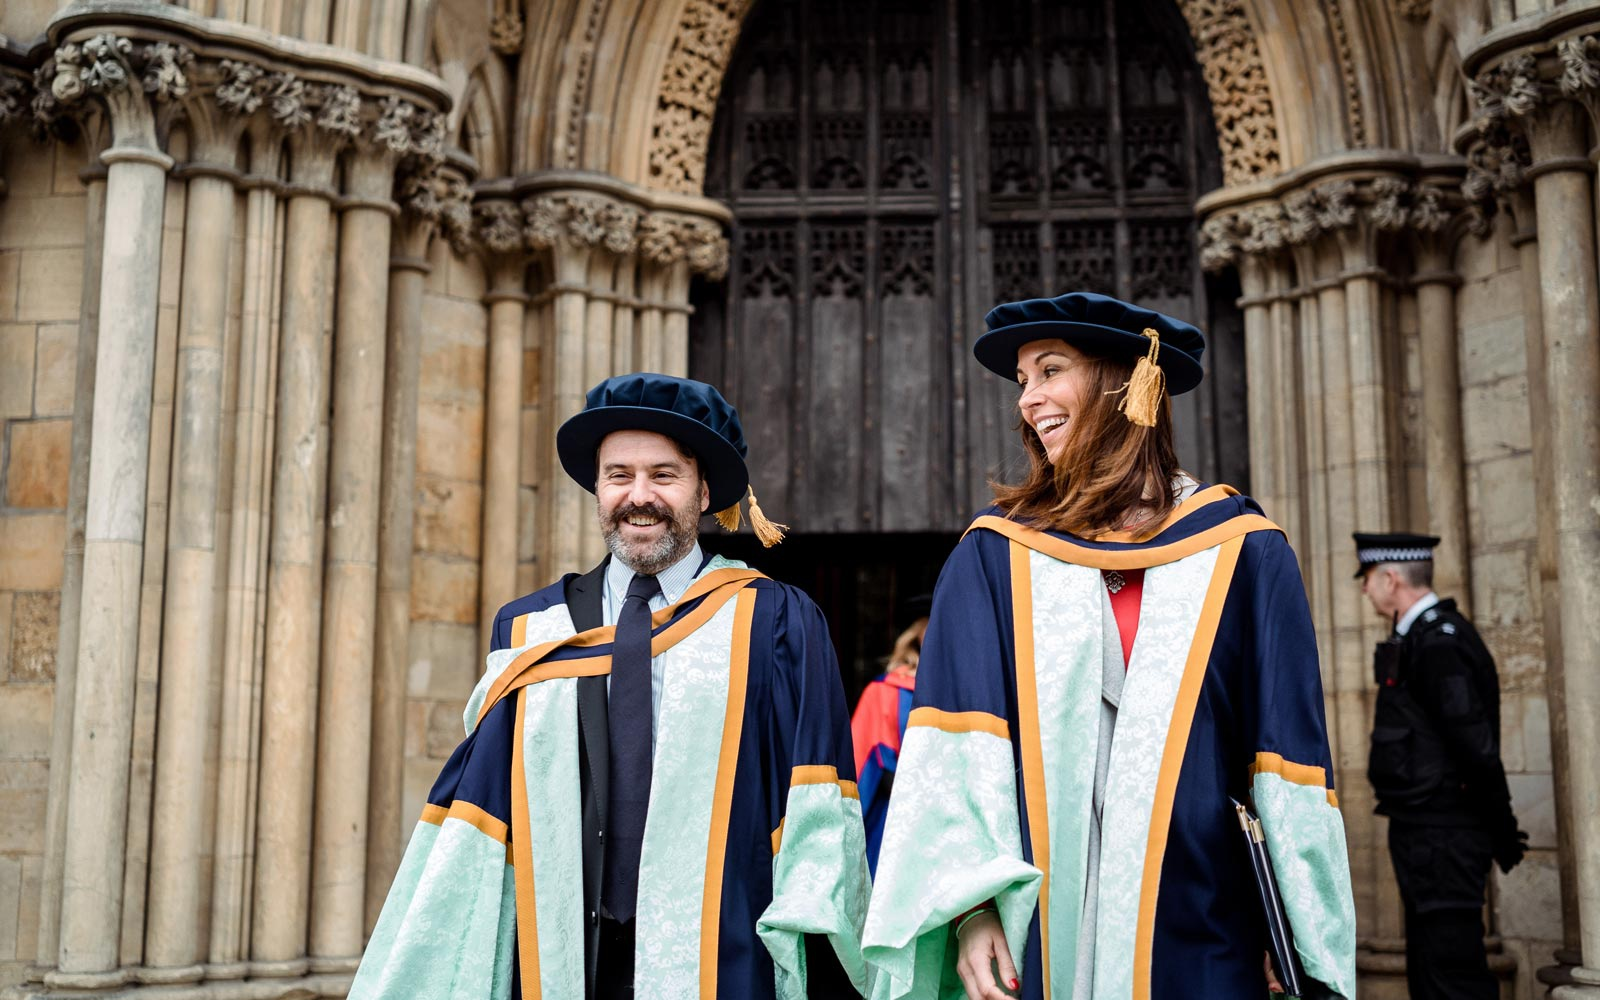 Honorary graduates walking out of the minster